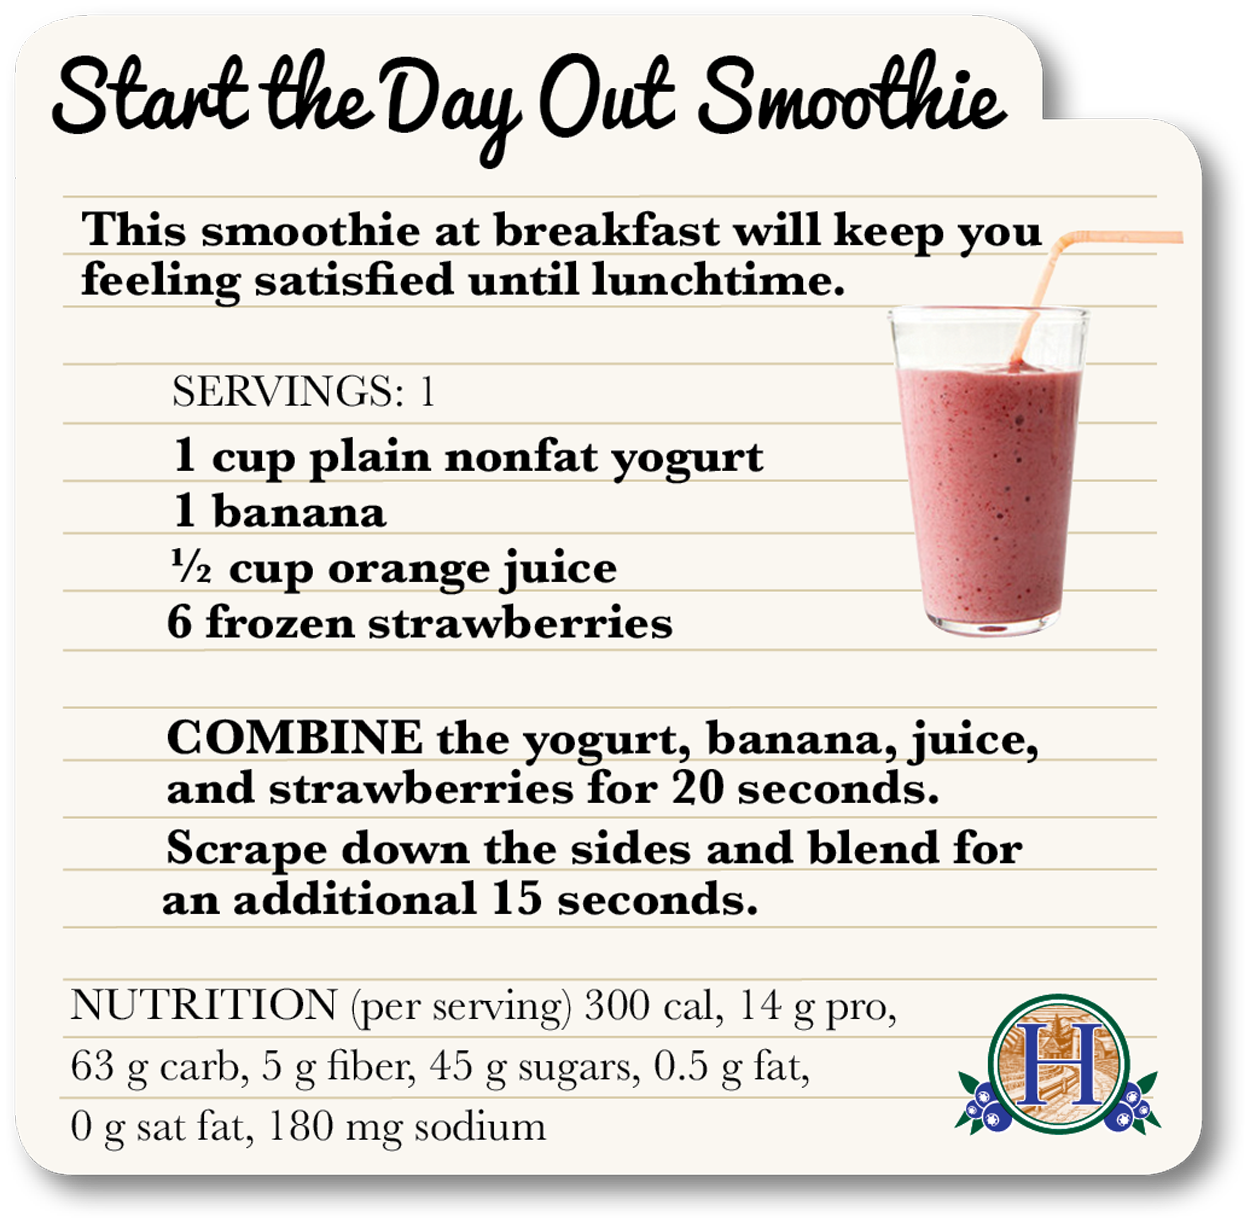 Start-the-Day-Out-Smoothie.png